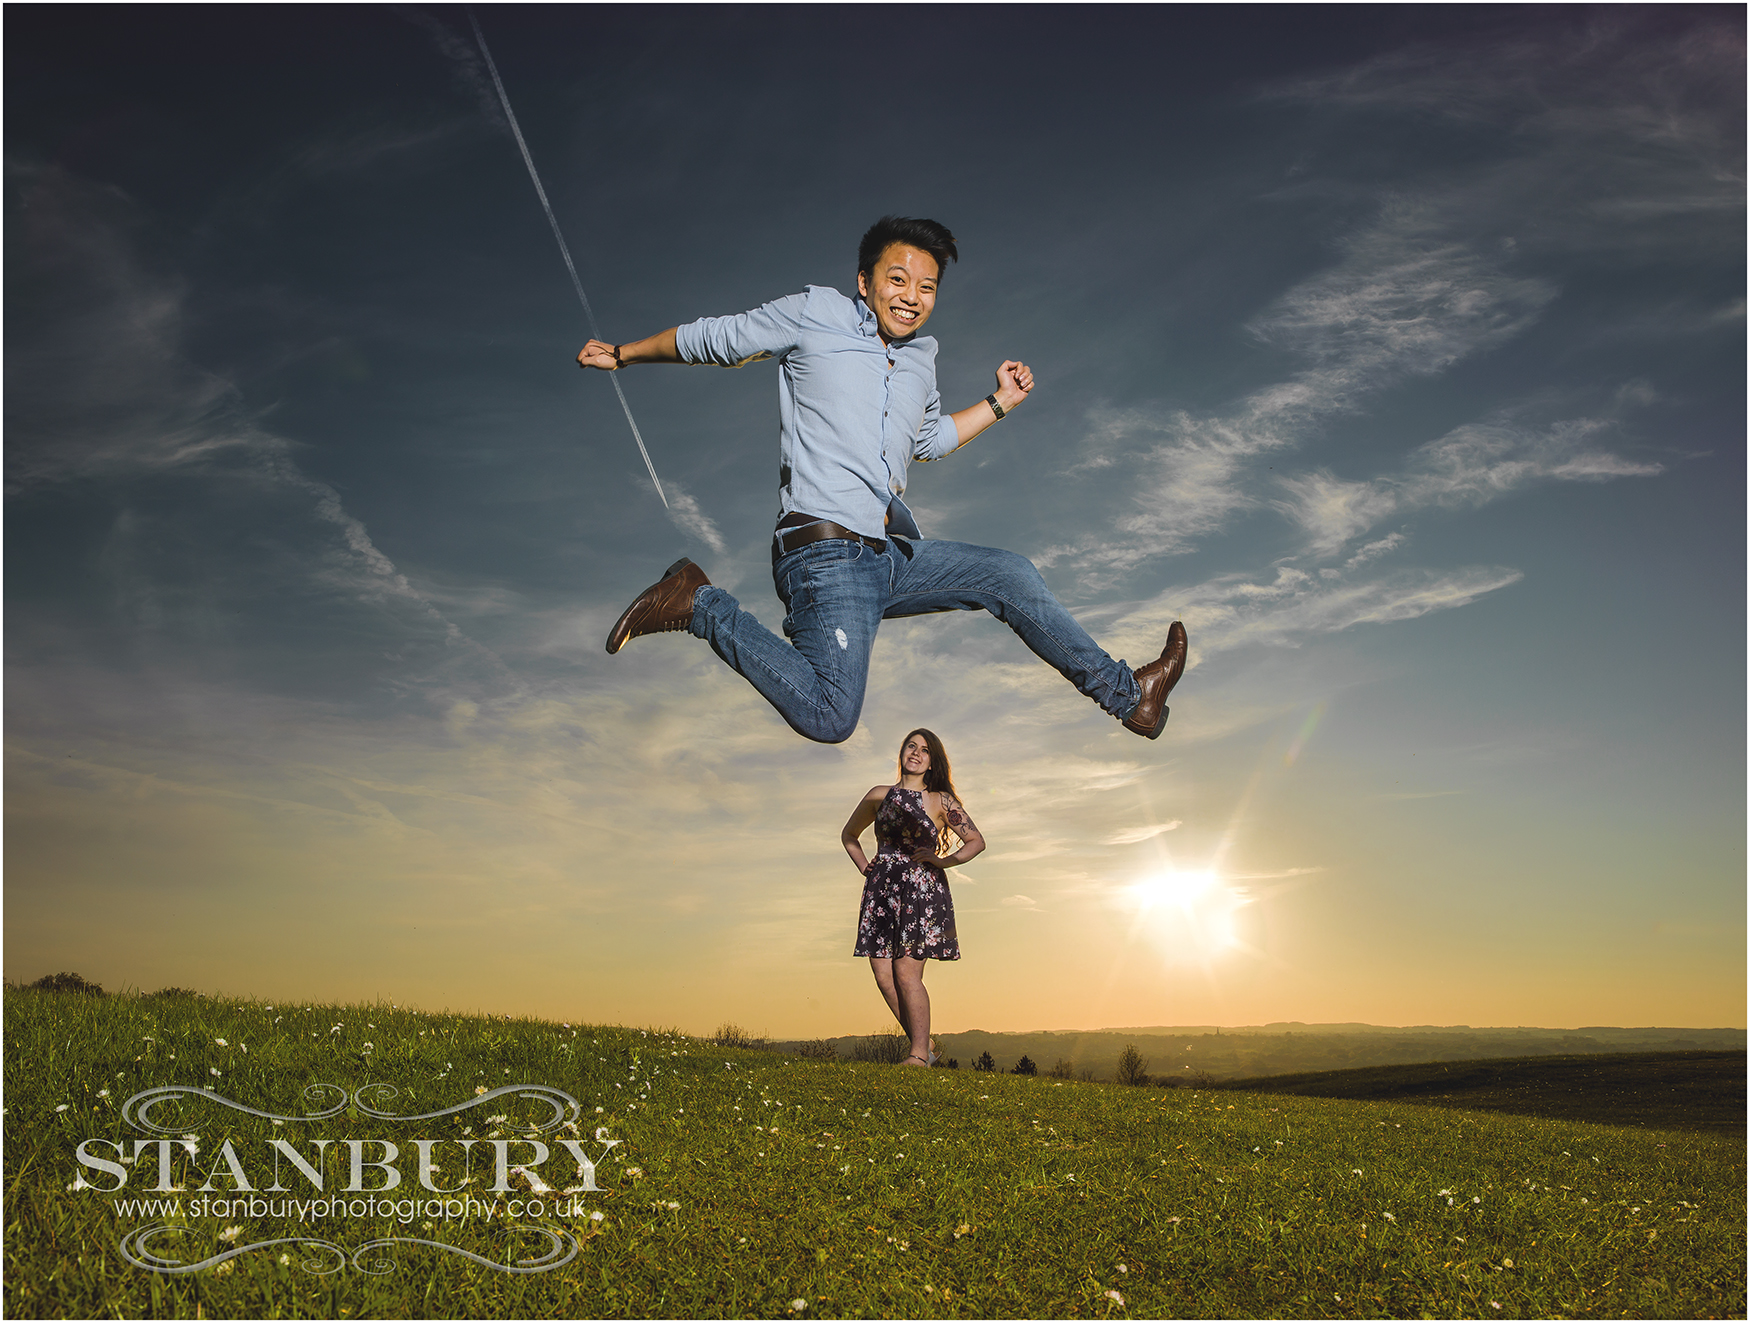 contemporary portrait photographers - stanbury photography